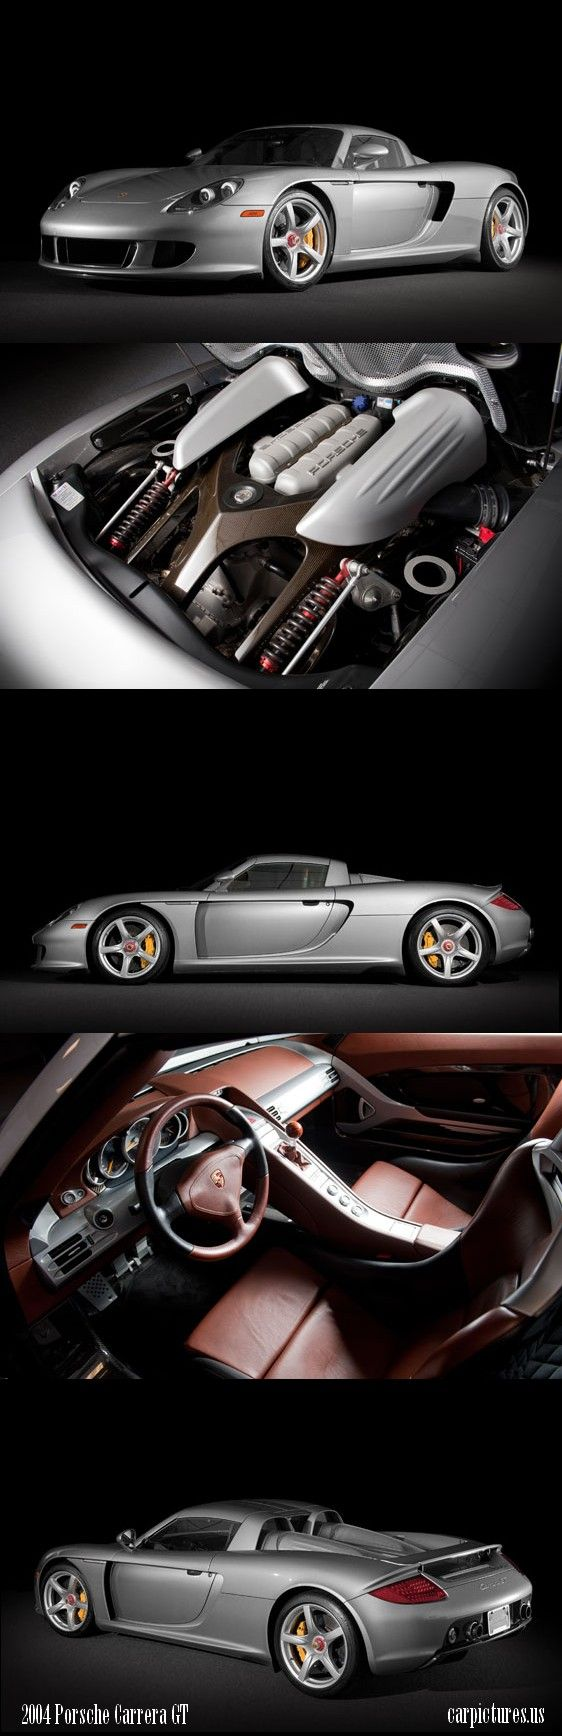 2004 Porsche Carrera GT. Source: RM Auctions.